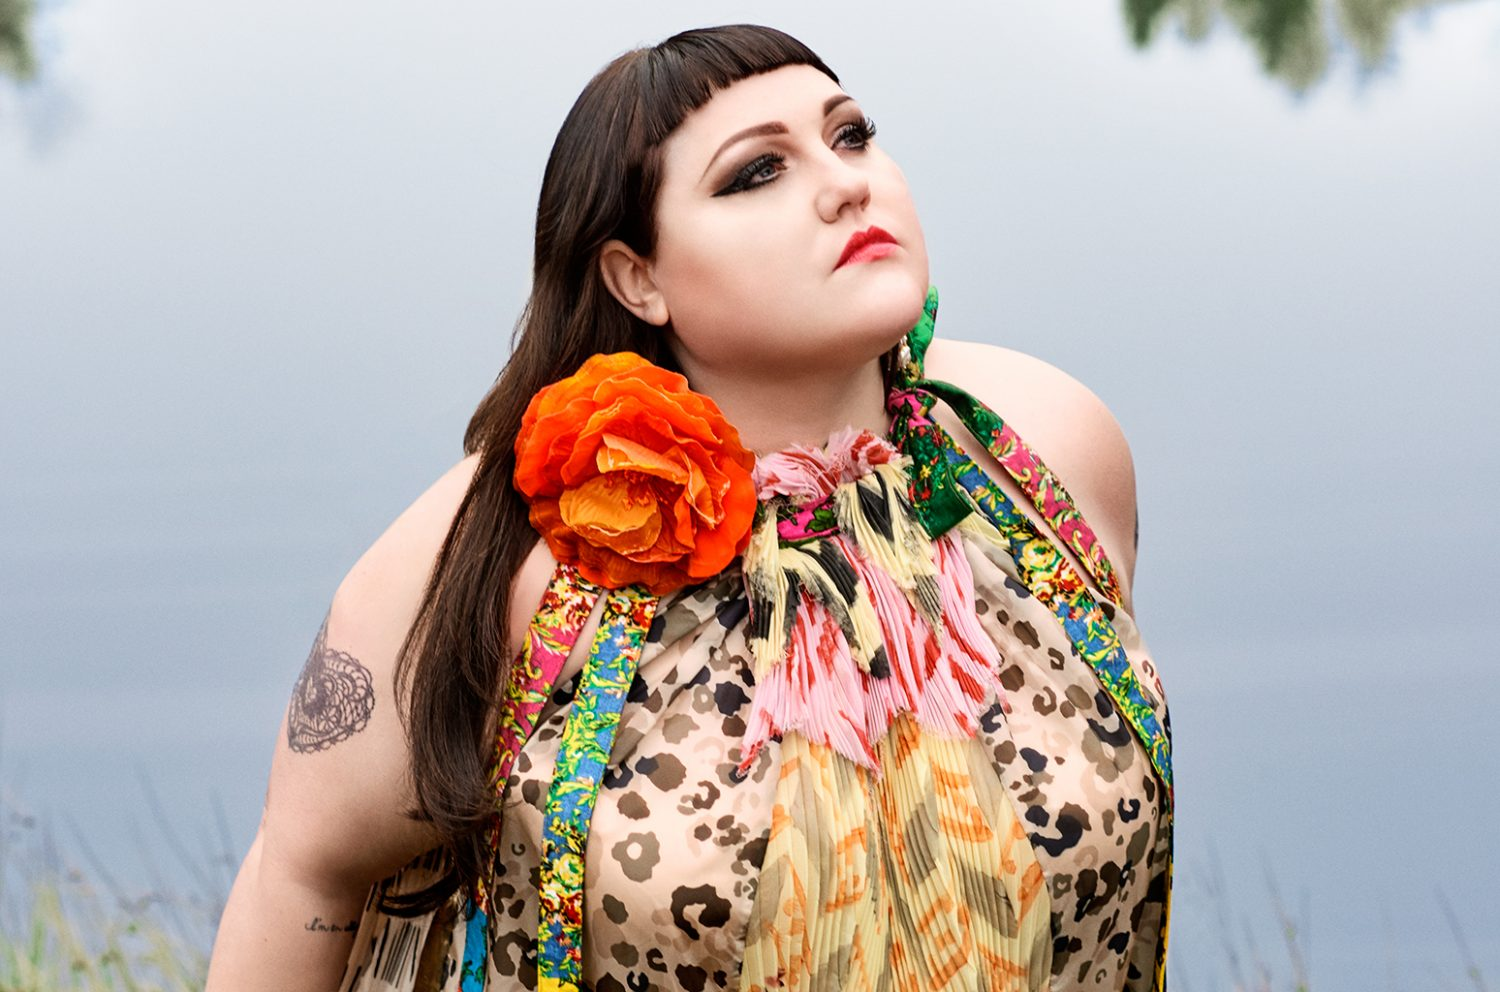 Gossip S Beth Ditto Roars Through Fiery Tommy James Cover